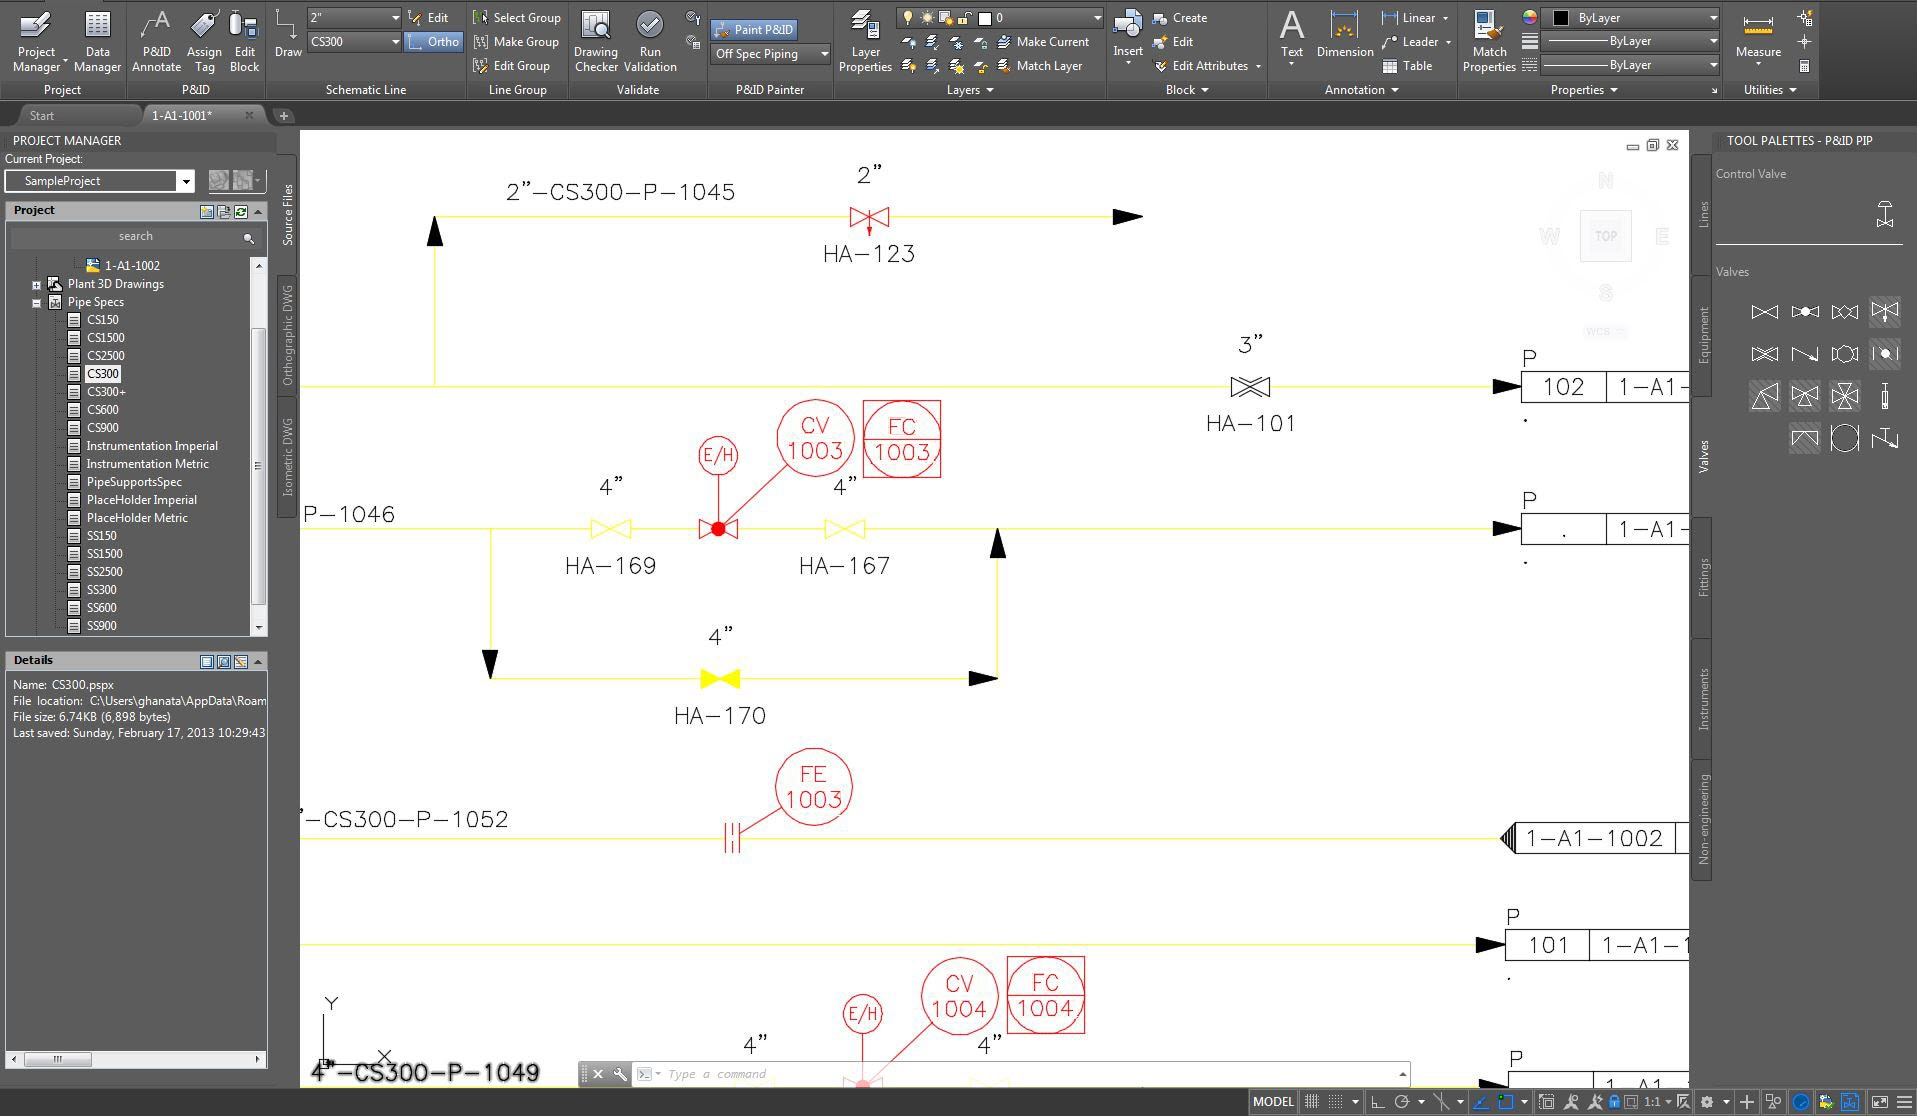 Autocad Plant 3d Toolset Design Software Piping Layout Rules Display Lines And Components In Colors By Property Value